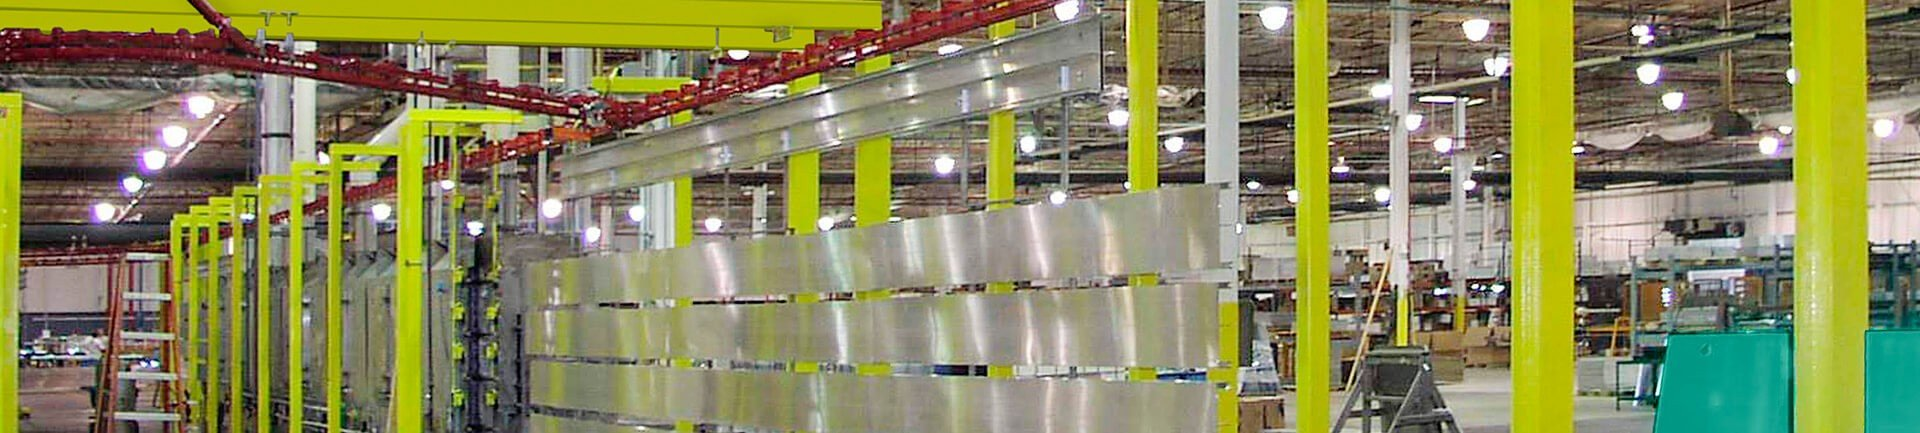 Conveyors to automate cleaning and other pre-treatment steps for metal finishing operations.